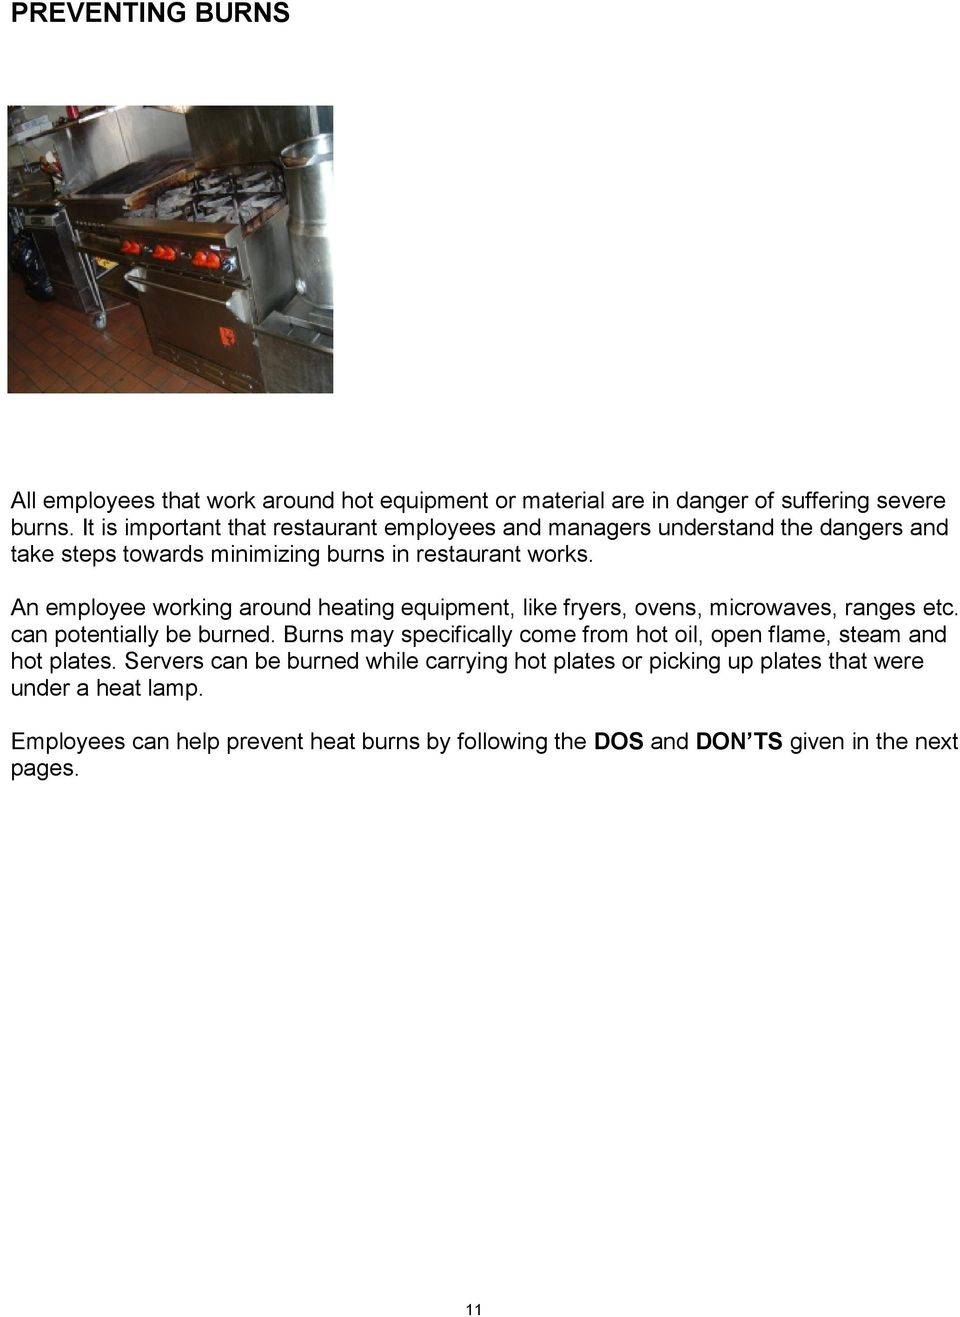 An employee working around heating equipment, like fryers, ovens, microwaves, ranges etc. can potentially be burned.